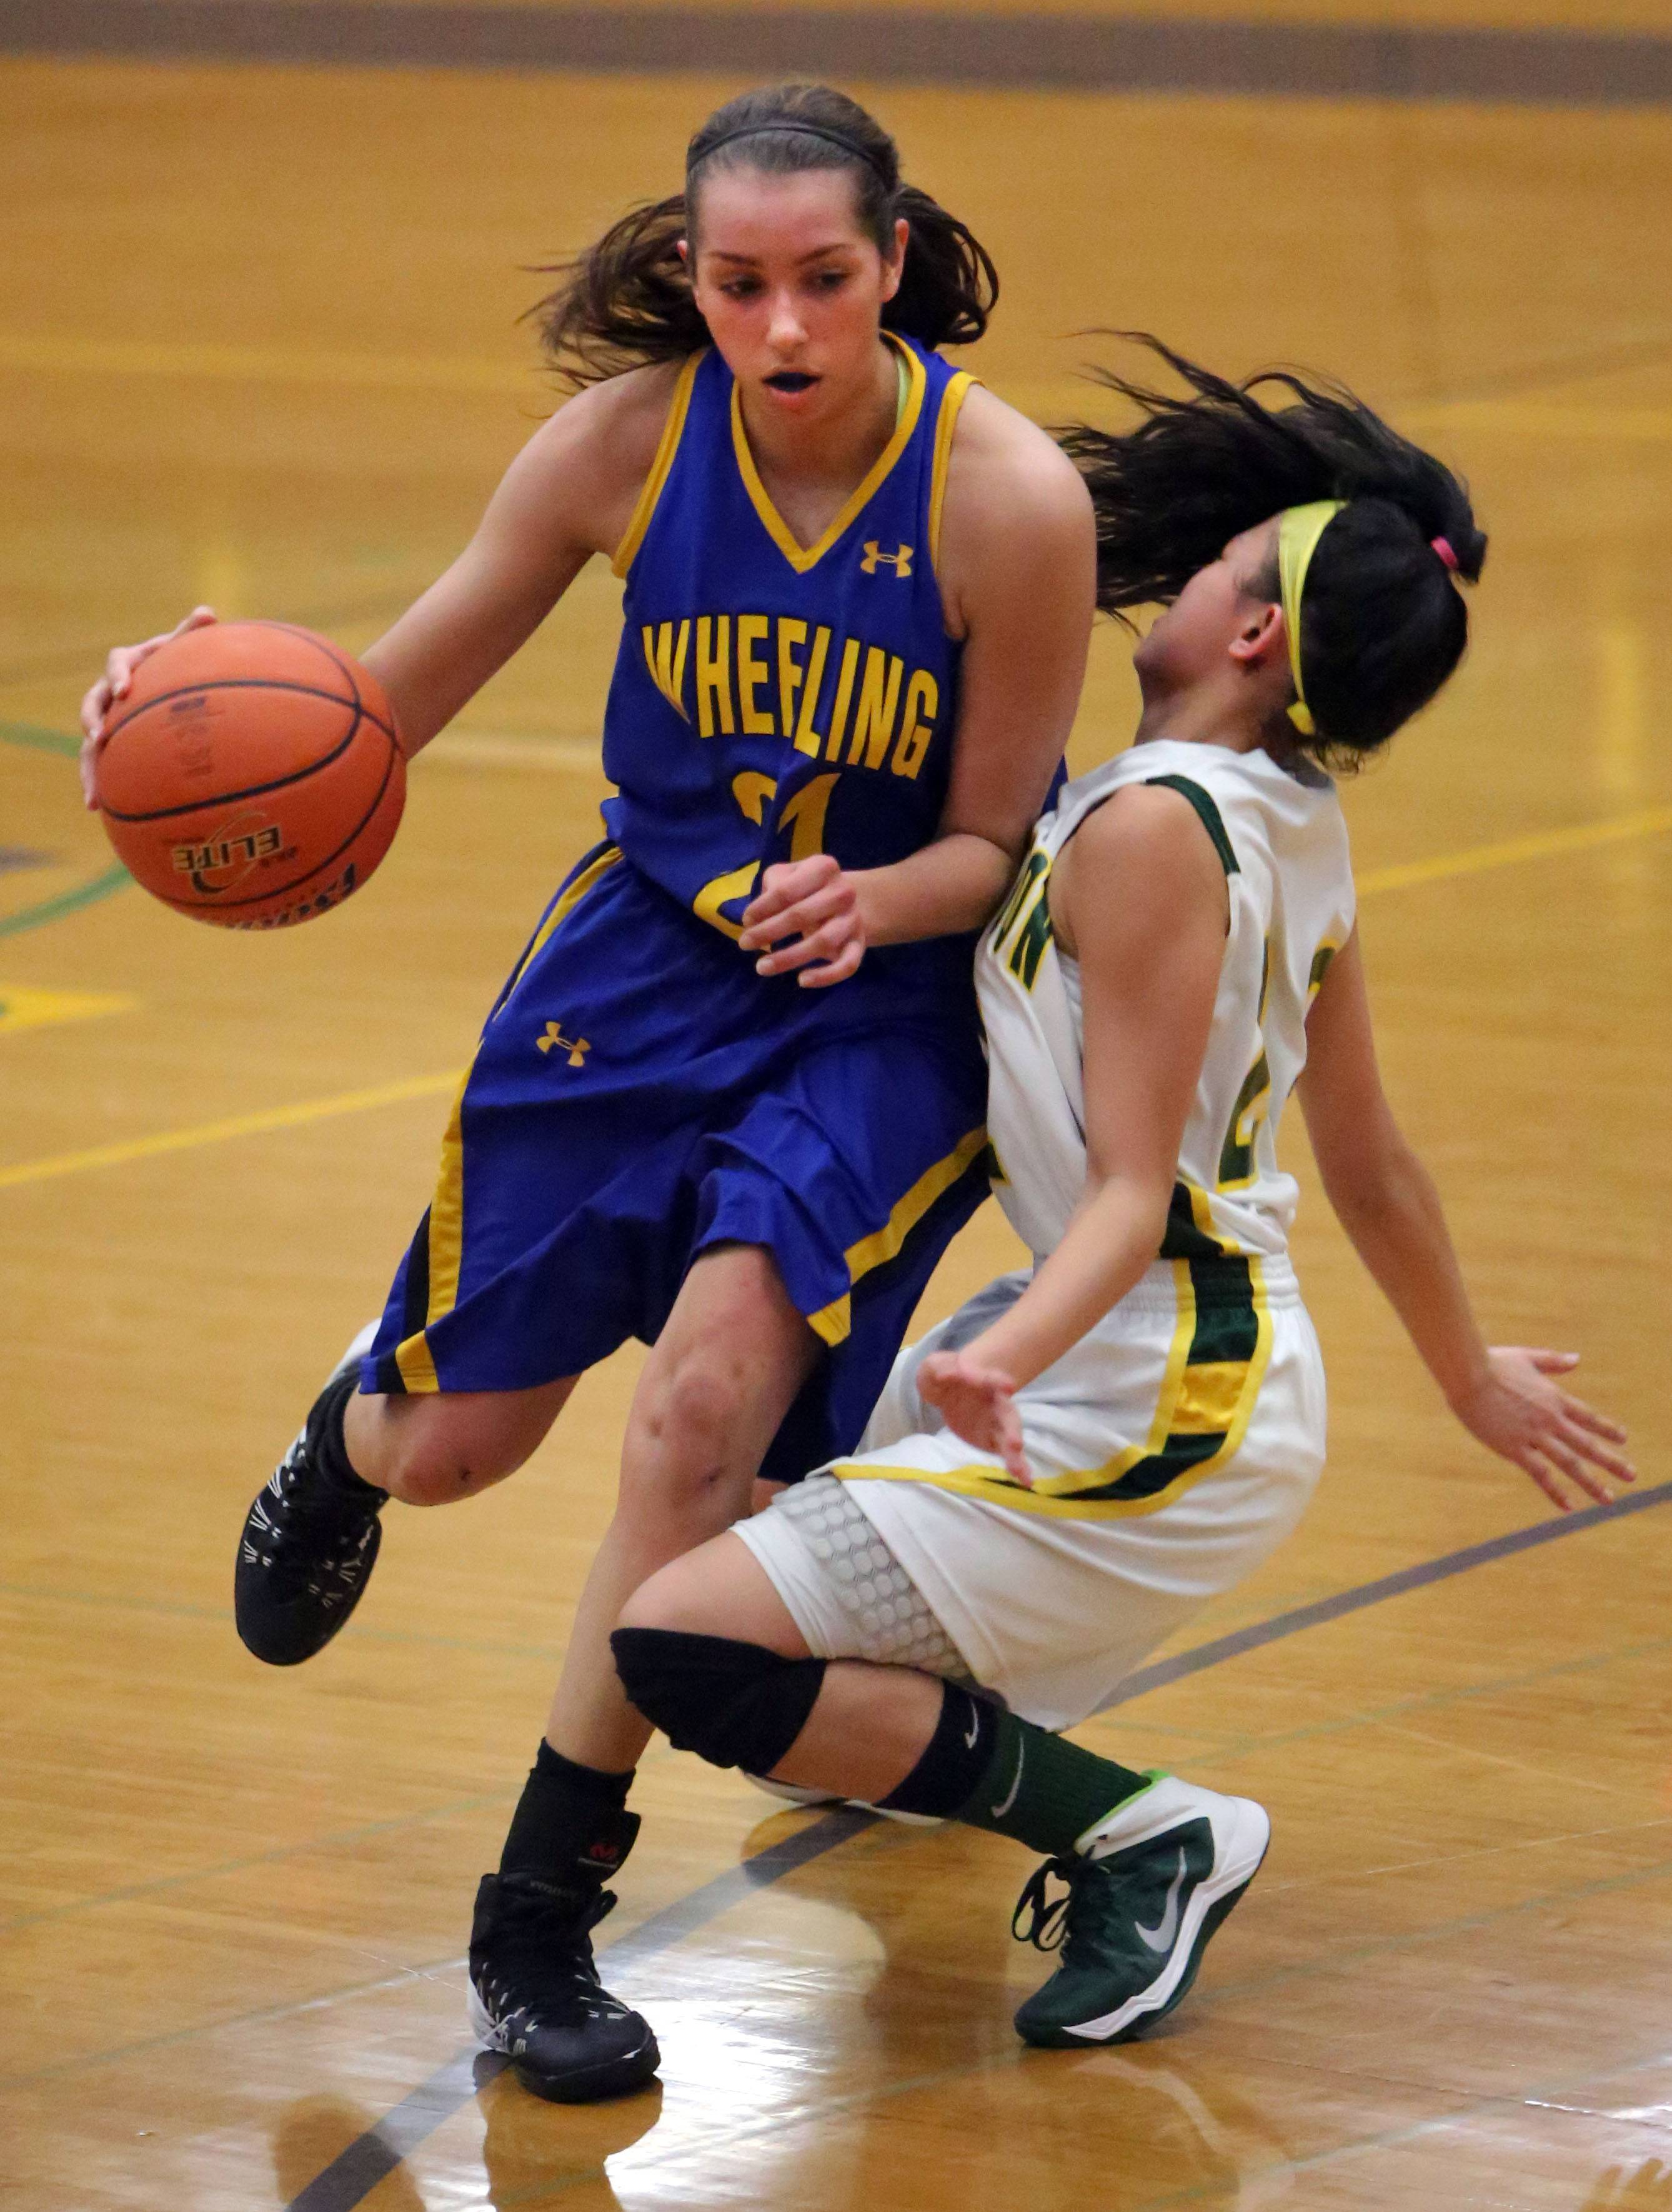 Wheeling's Deanna Kuzmanic, left, drives into Stevenson's Janine Fajardo during Class 4A regional semifinal play at Waukegan on Wednesday.